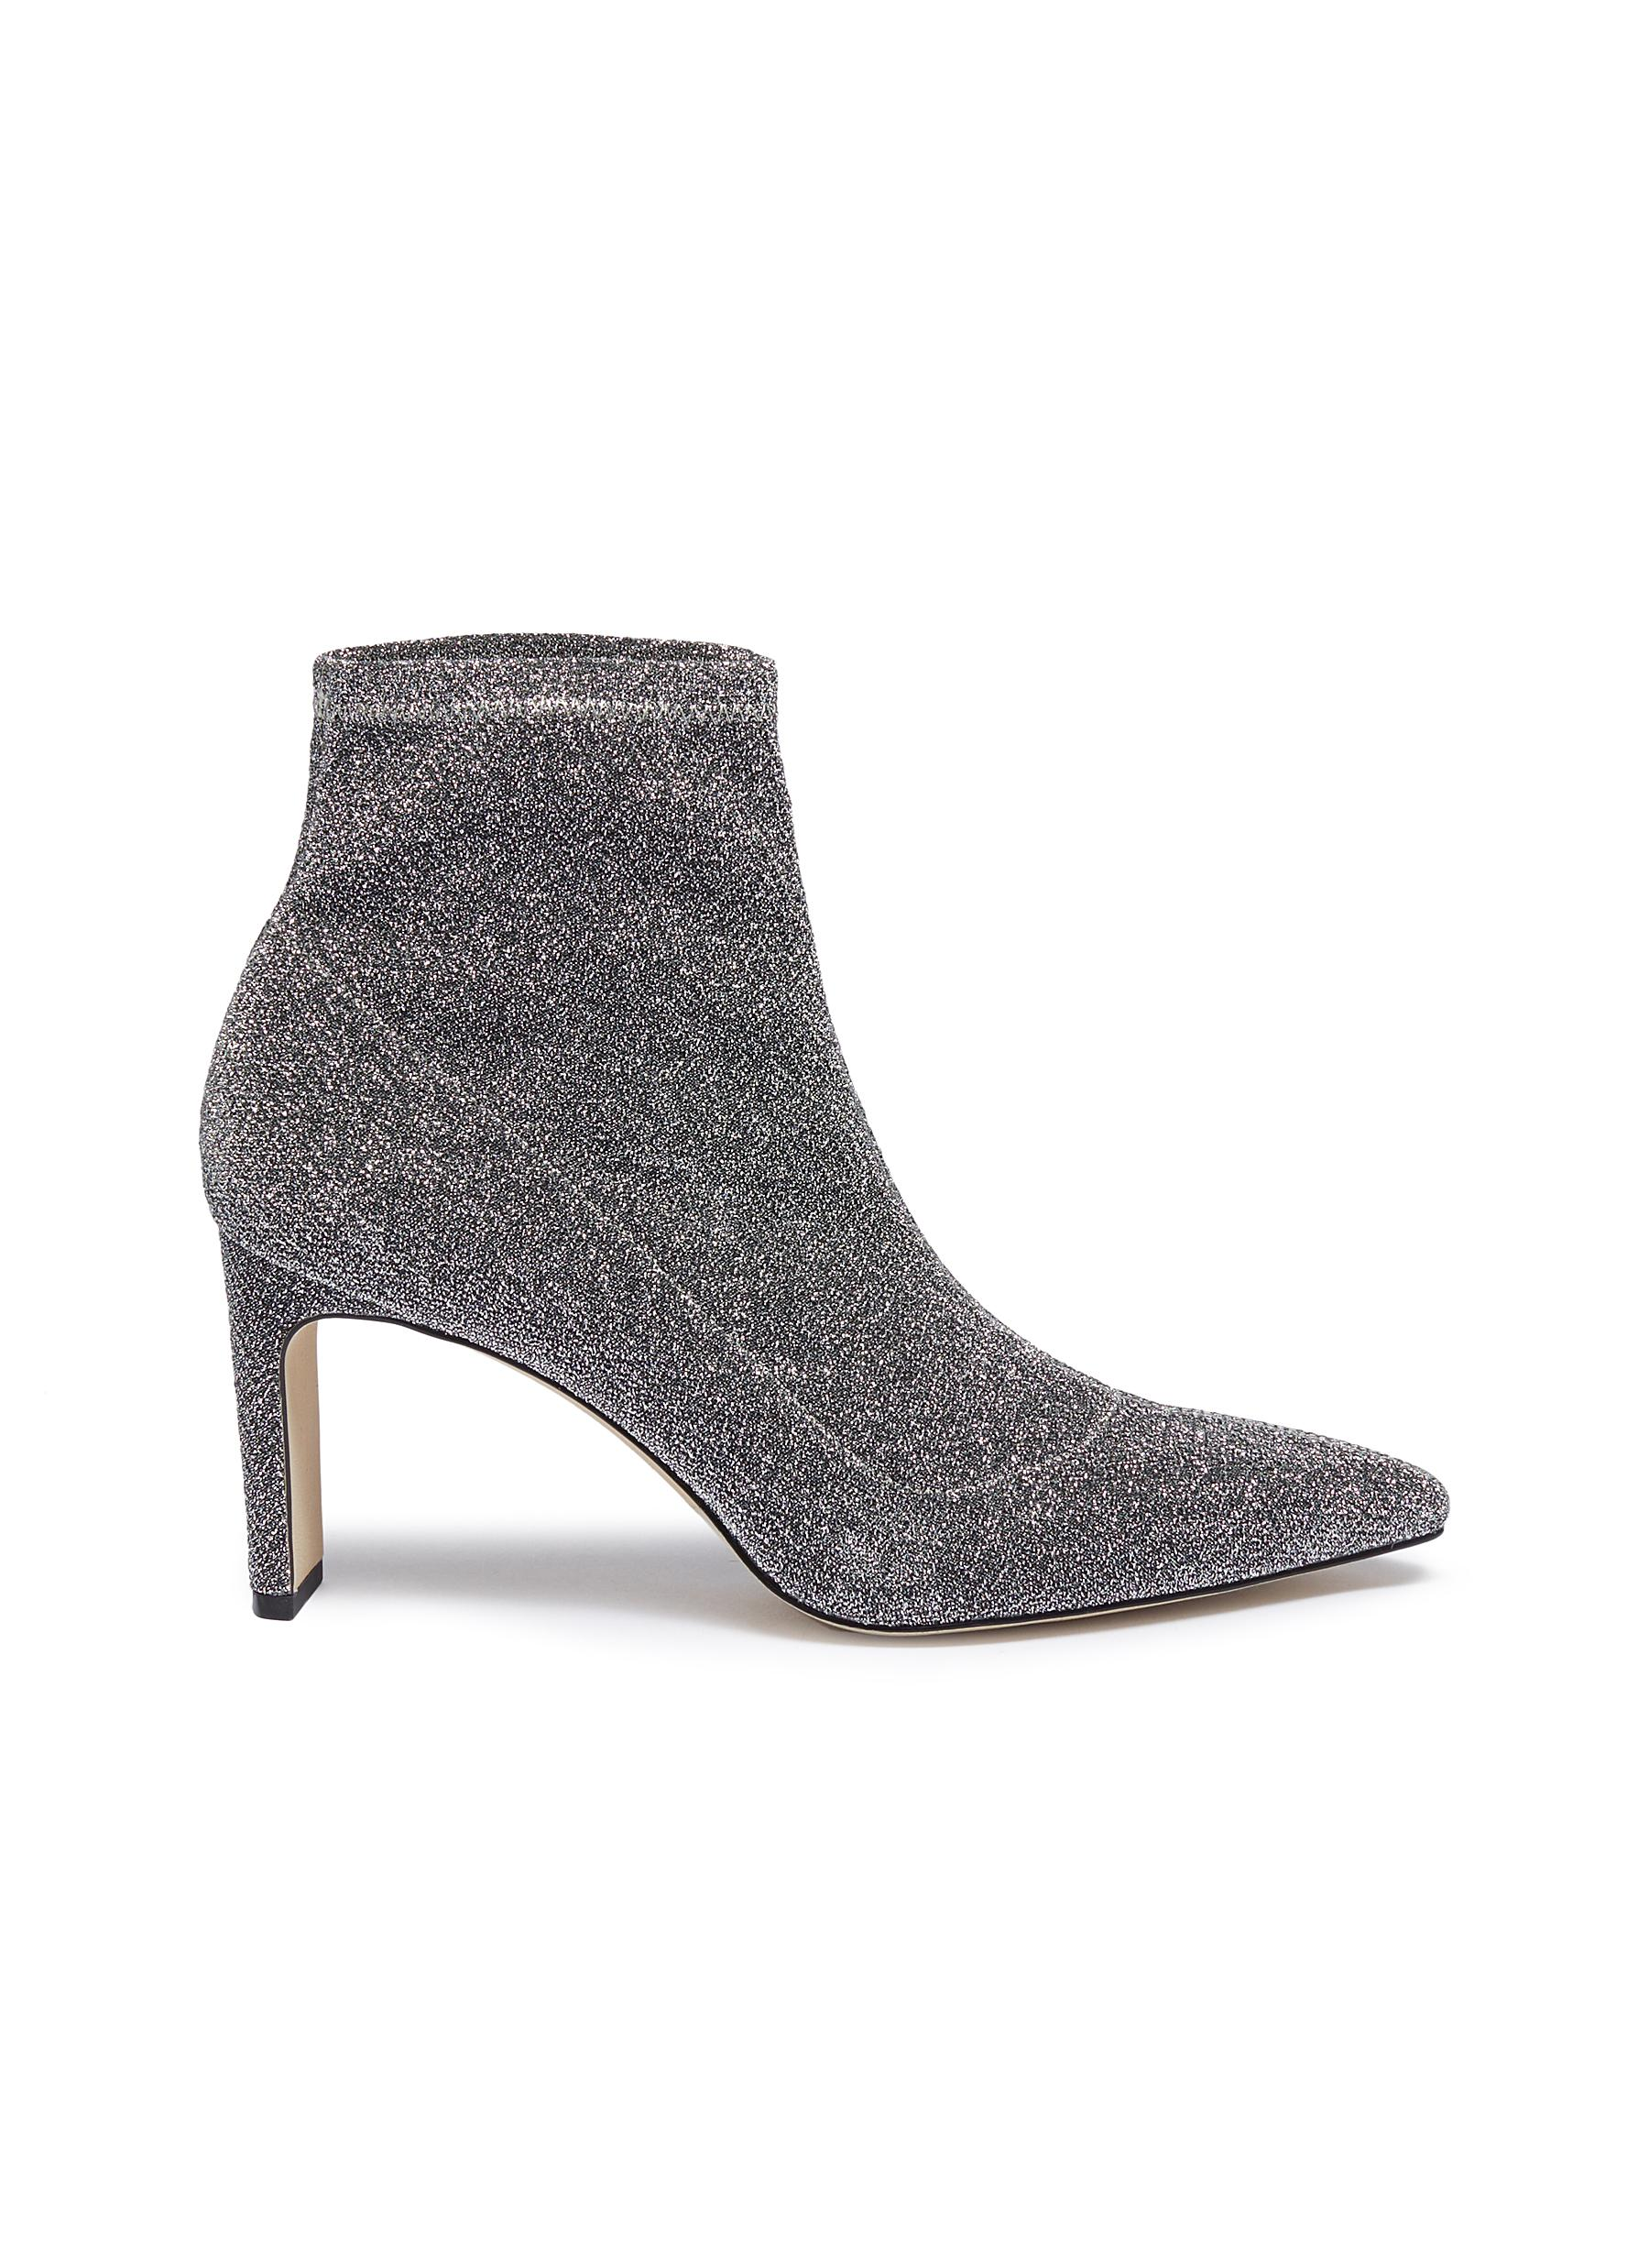 Hank glitter sock knit ankle boots by Pedder Red